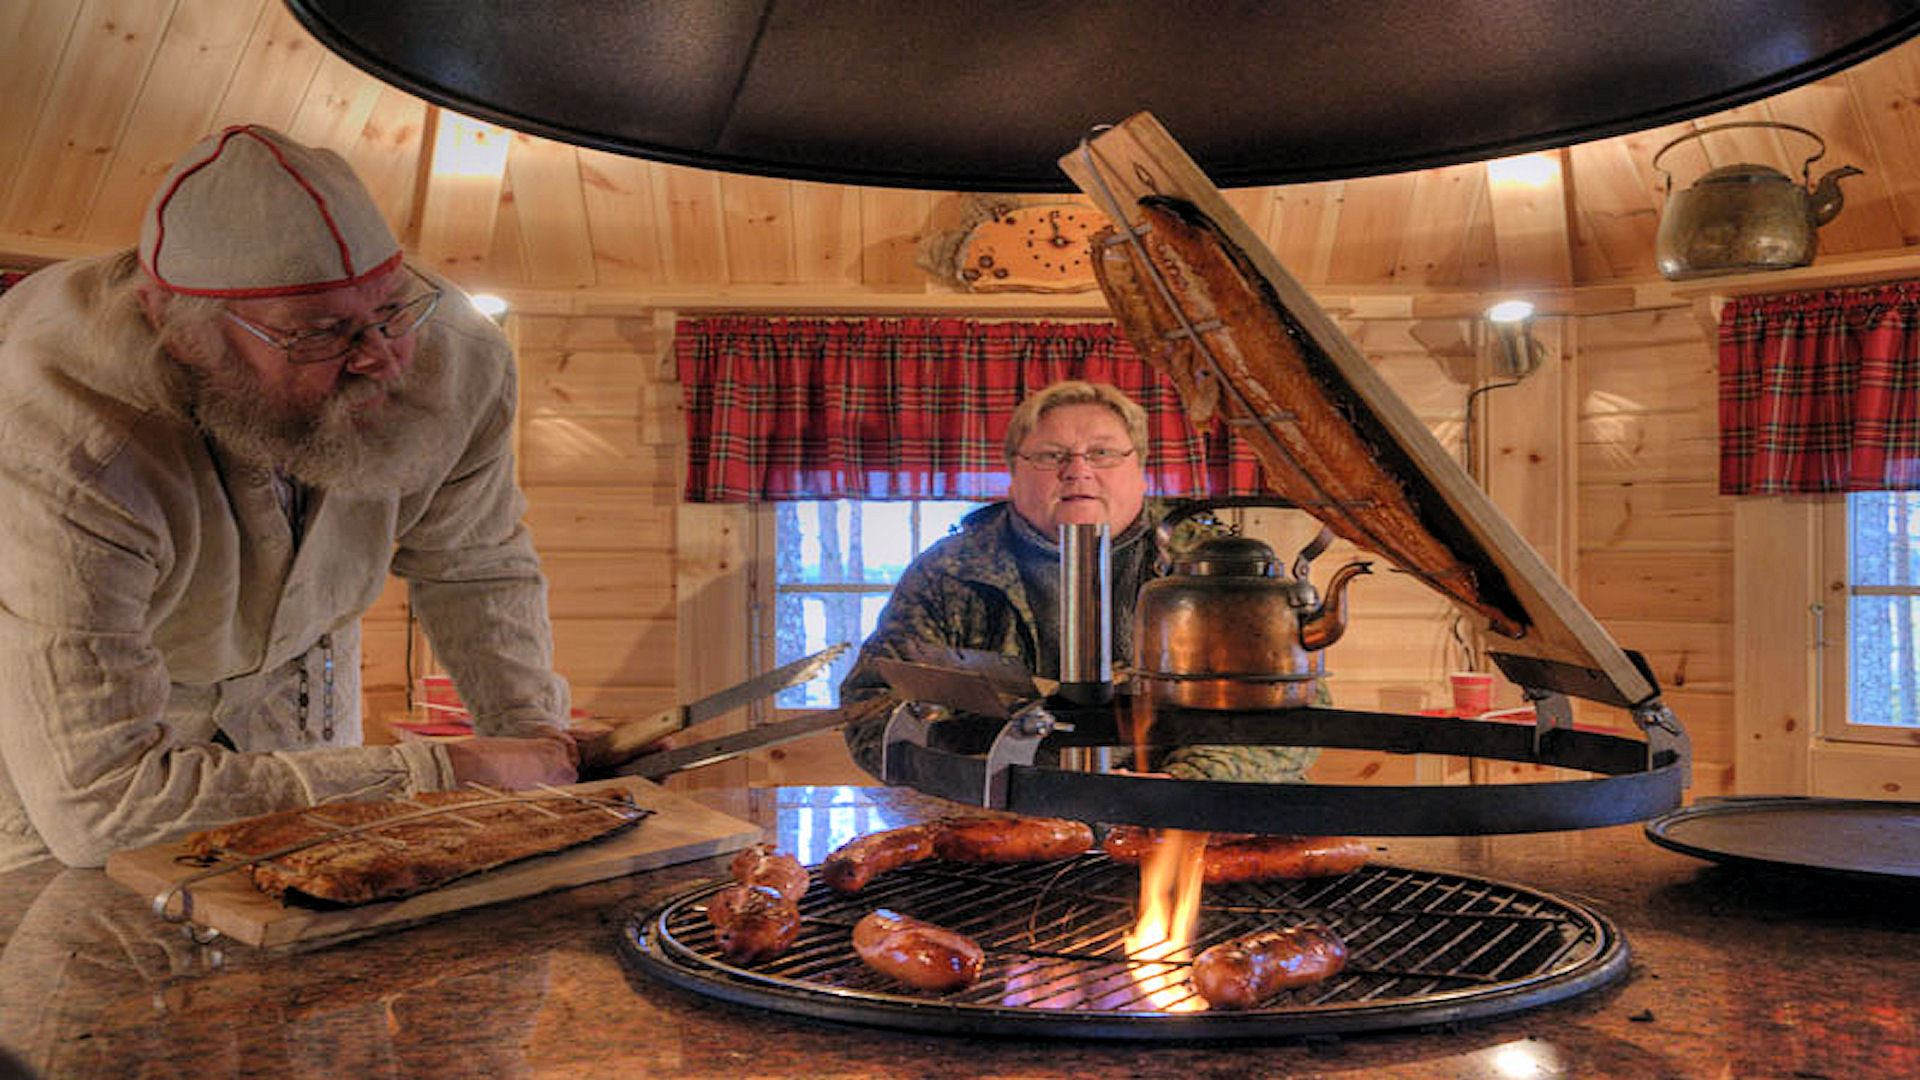 Slow Finnish lifestyle and traditions in Kullasmarina, 2 days